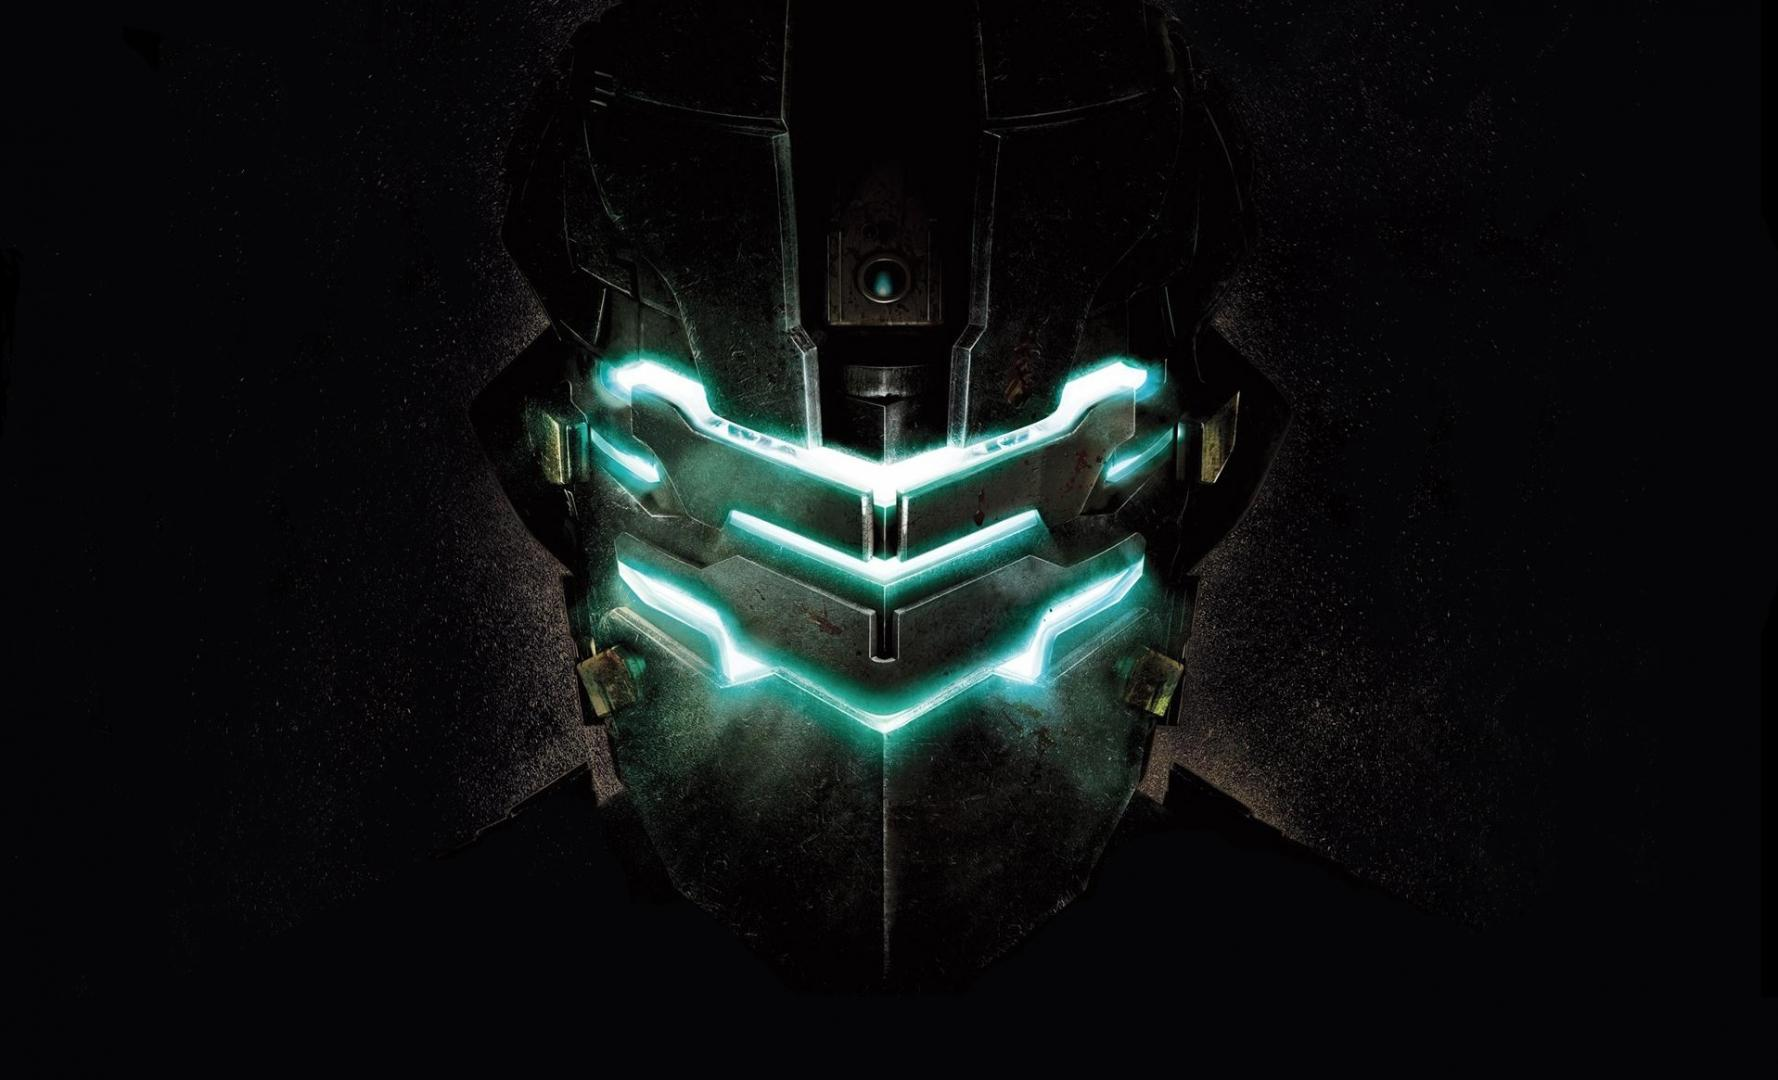 dead_space_7-wallpaper-1920x1200.jpg